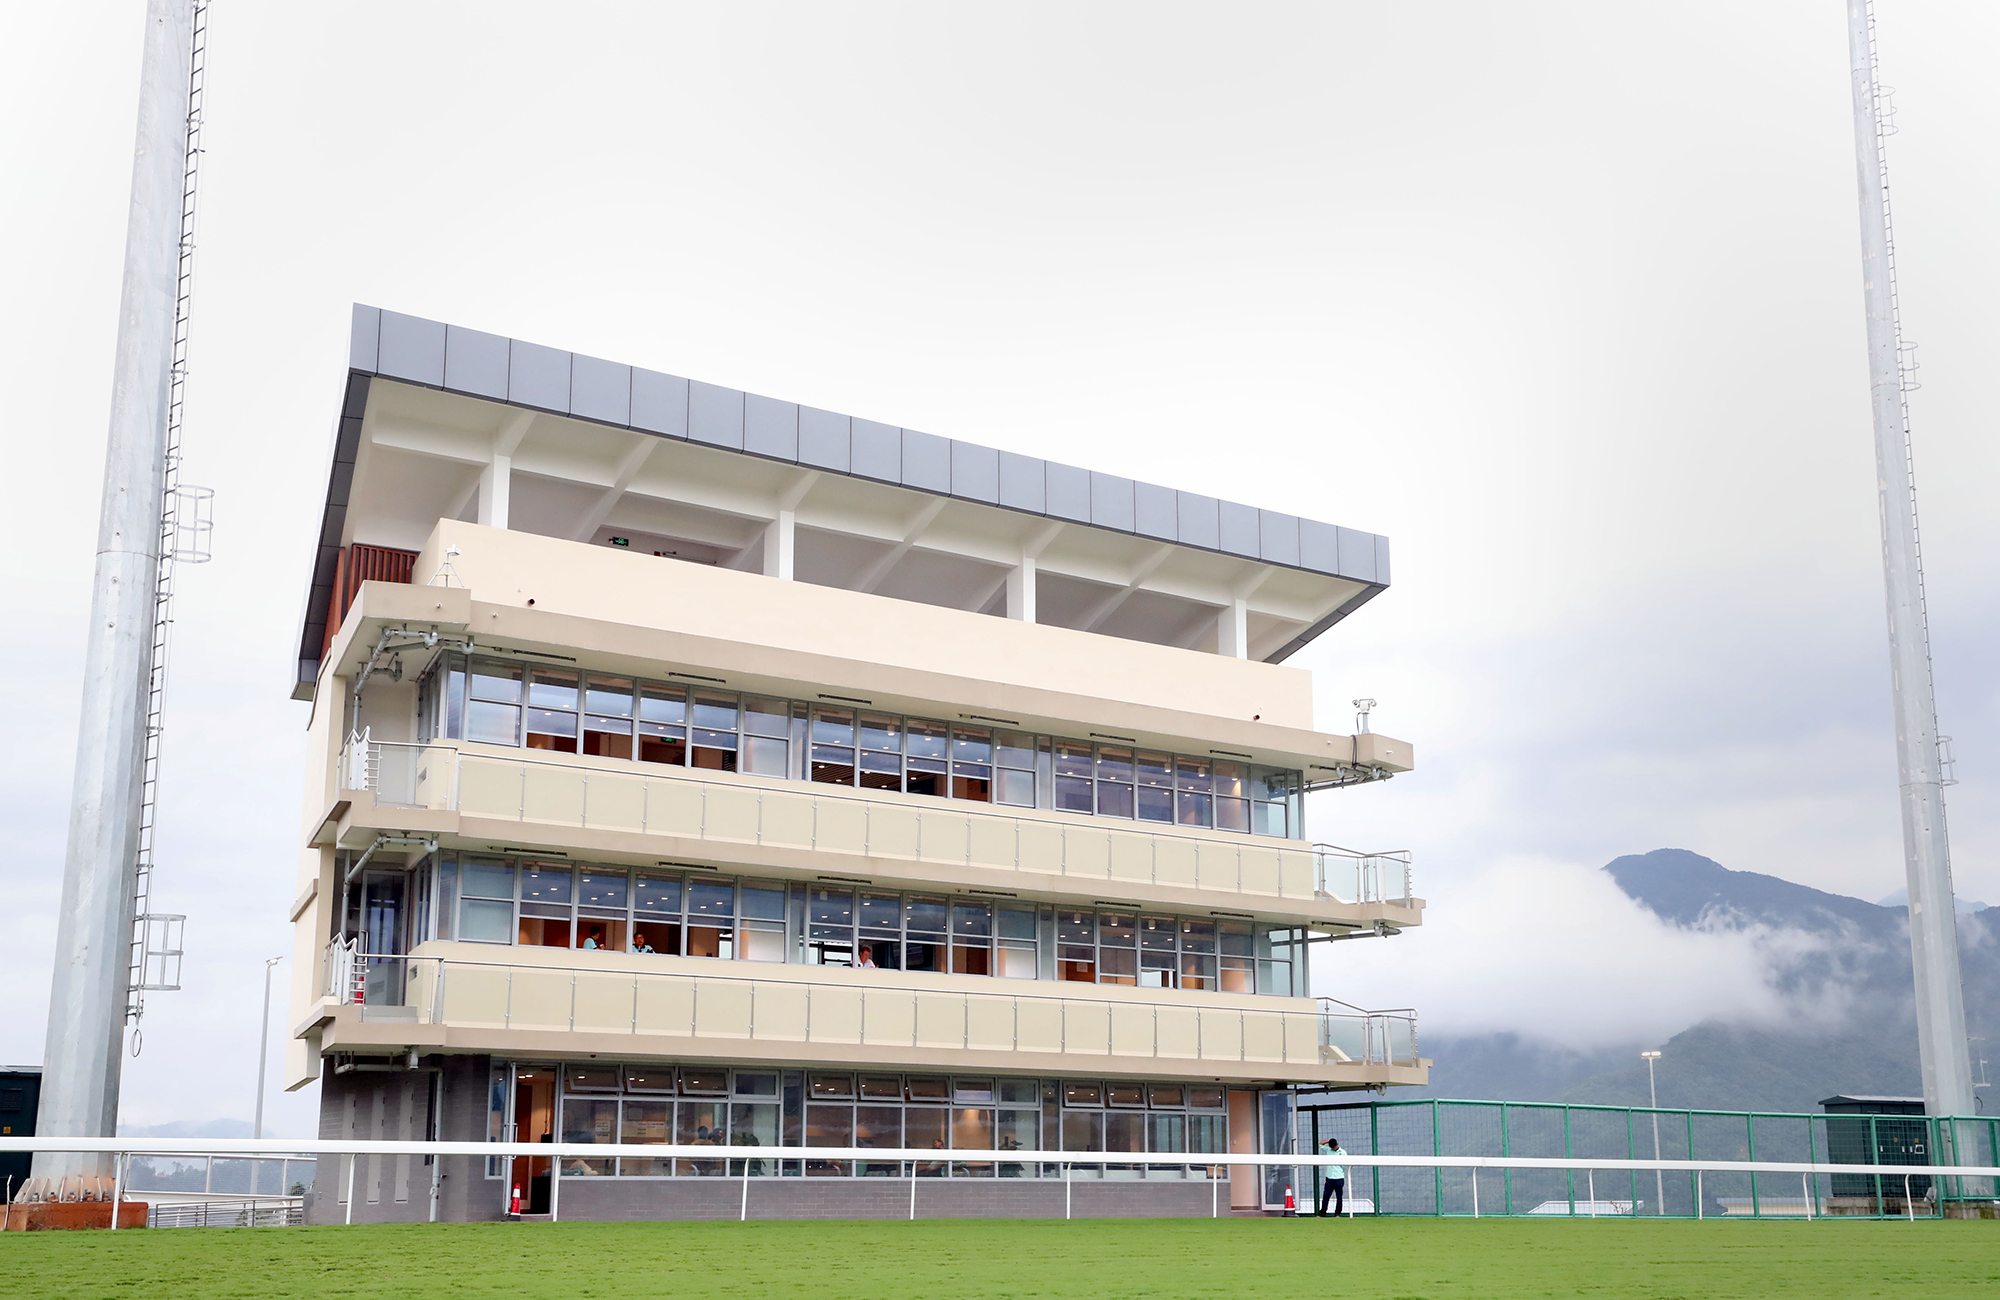 The trainers pavilion has an unobstructed view of the racecourse.